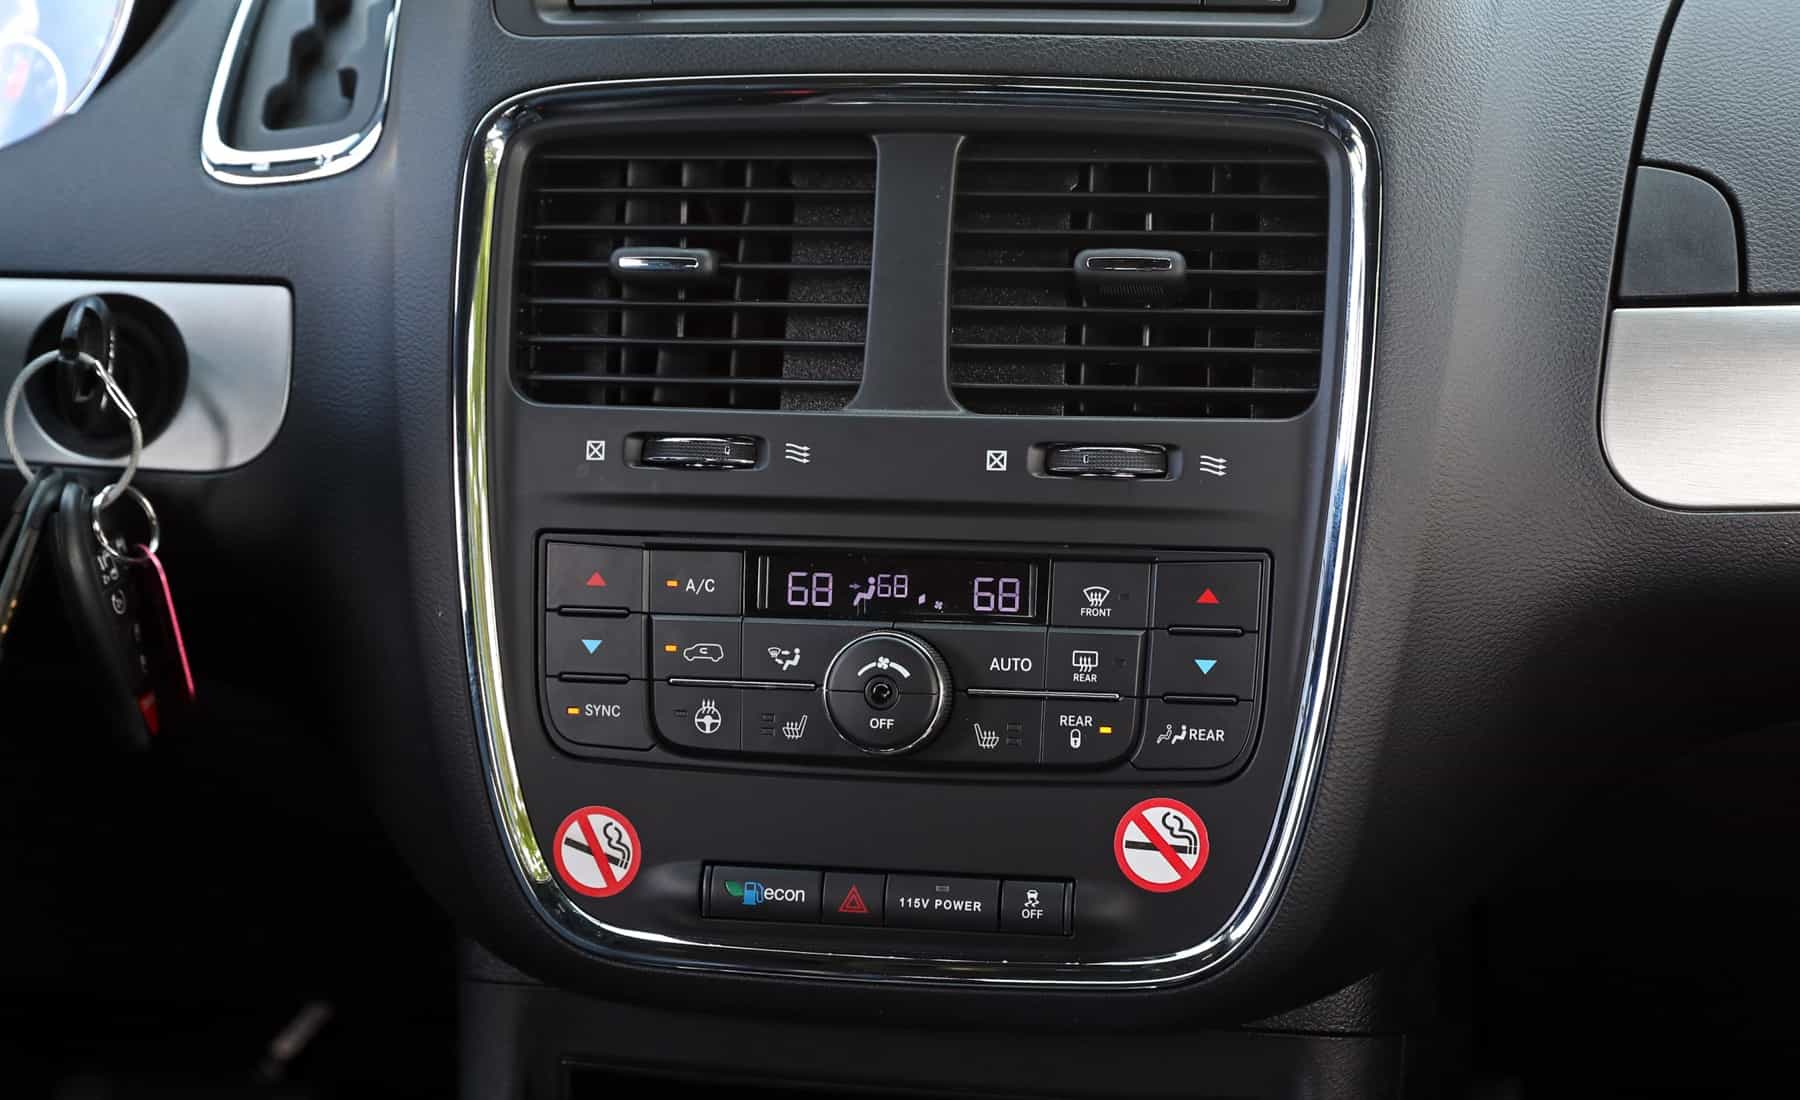 2017 Dodge Grand Caravan Interior View Climate Control (View 20 of 47)